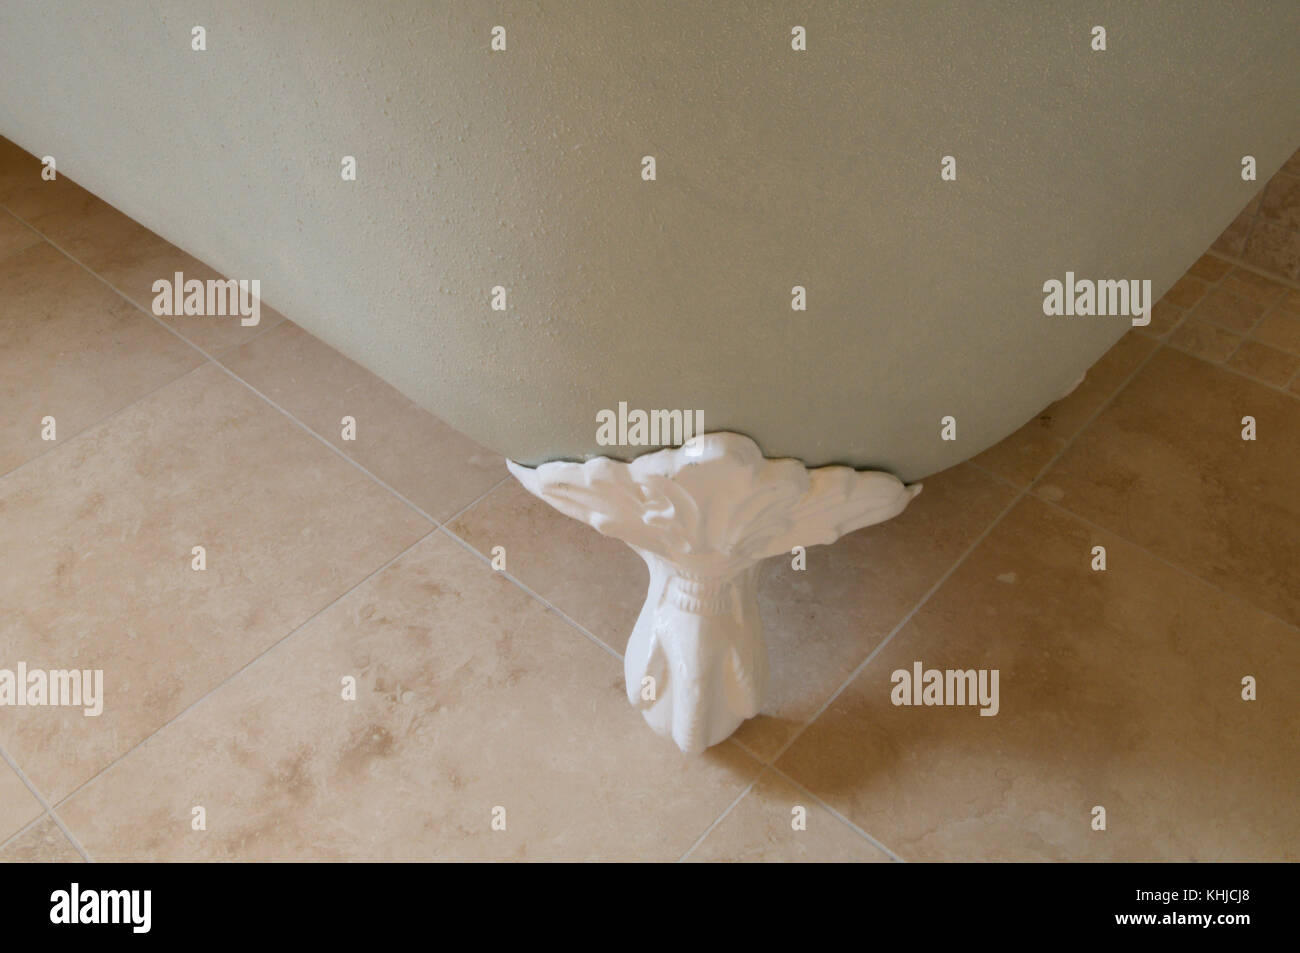 A corner foot of an old claw foot bathtub. - Stock Image